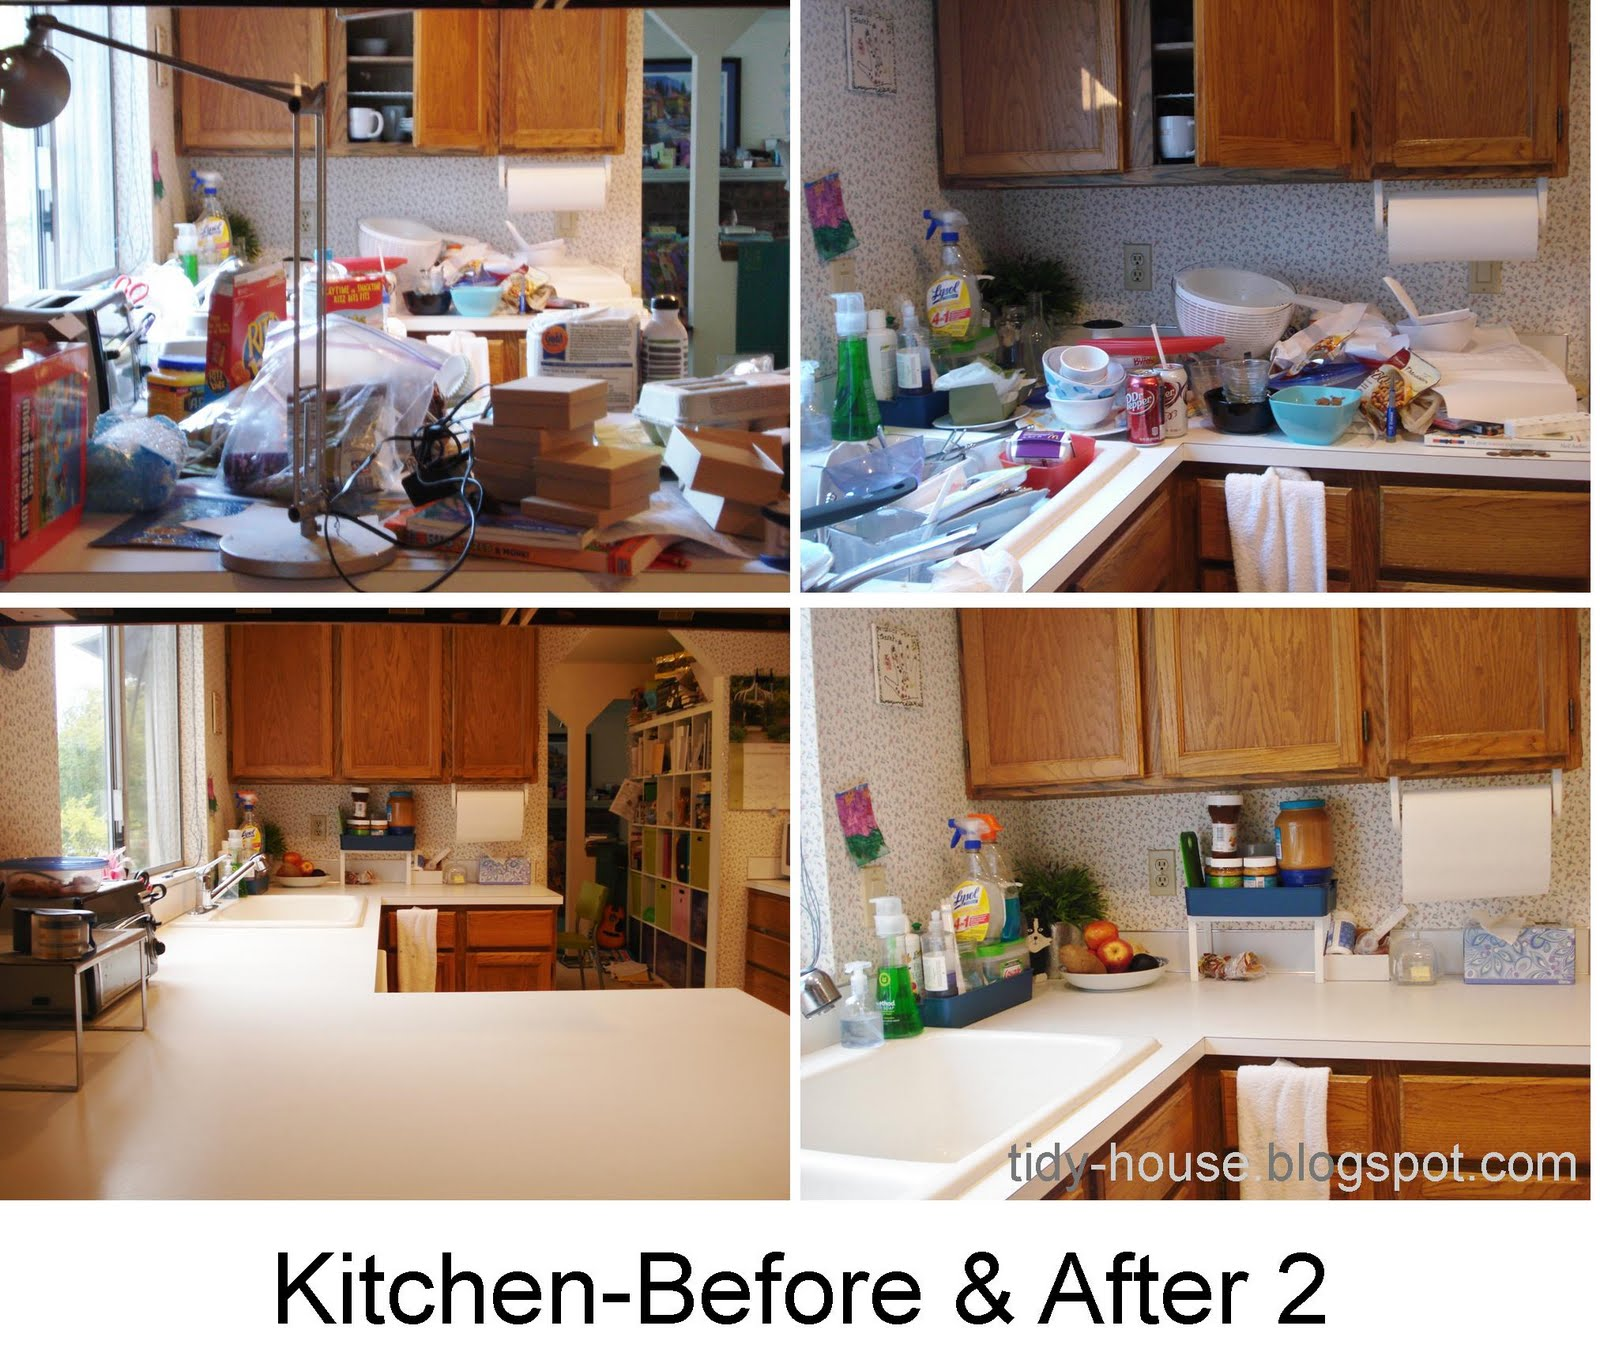 Messy Kitchen Counter: Tidy House: Final Kitchen-Before And After